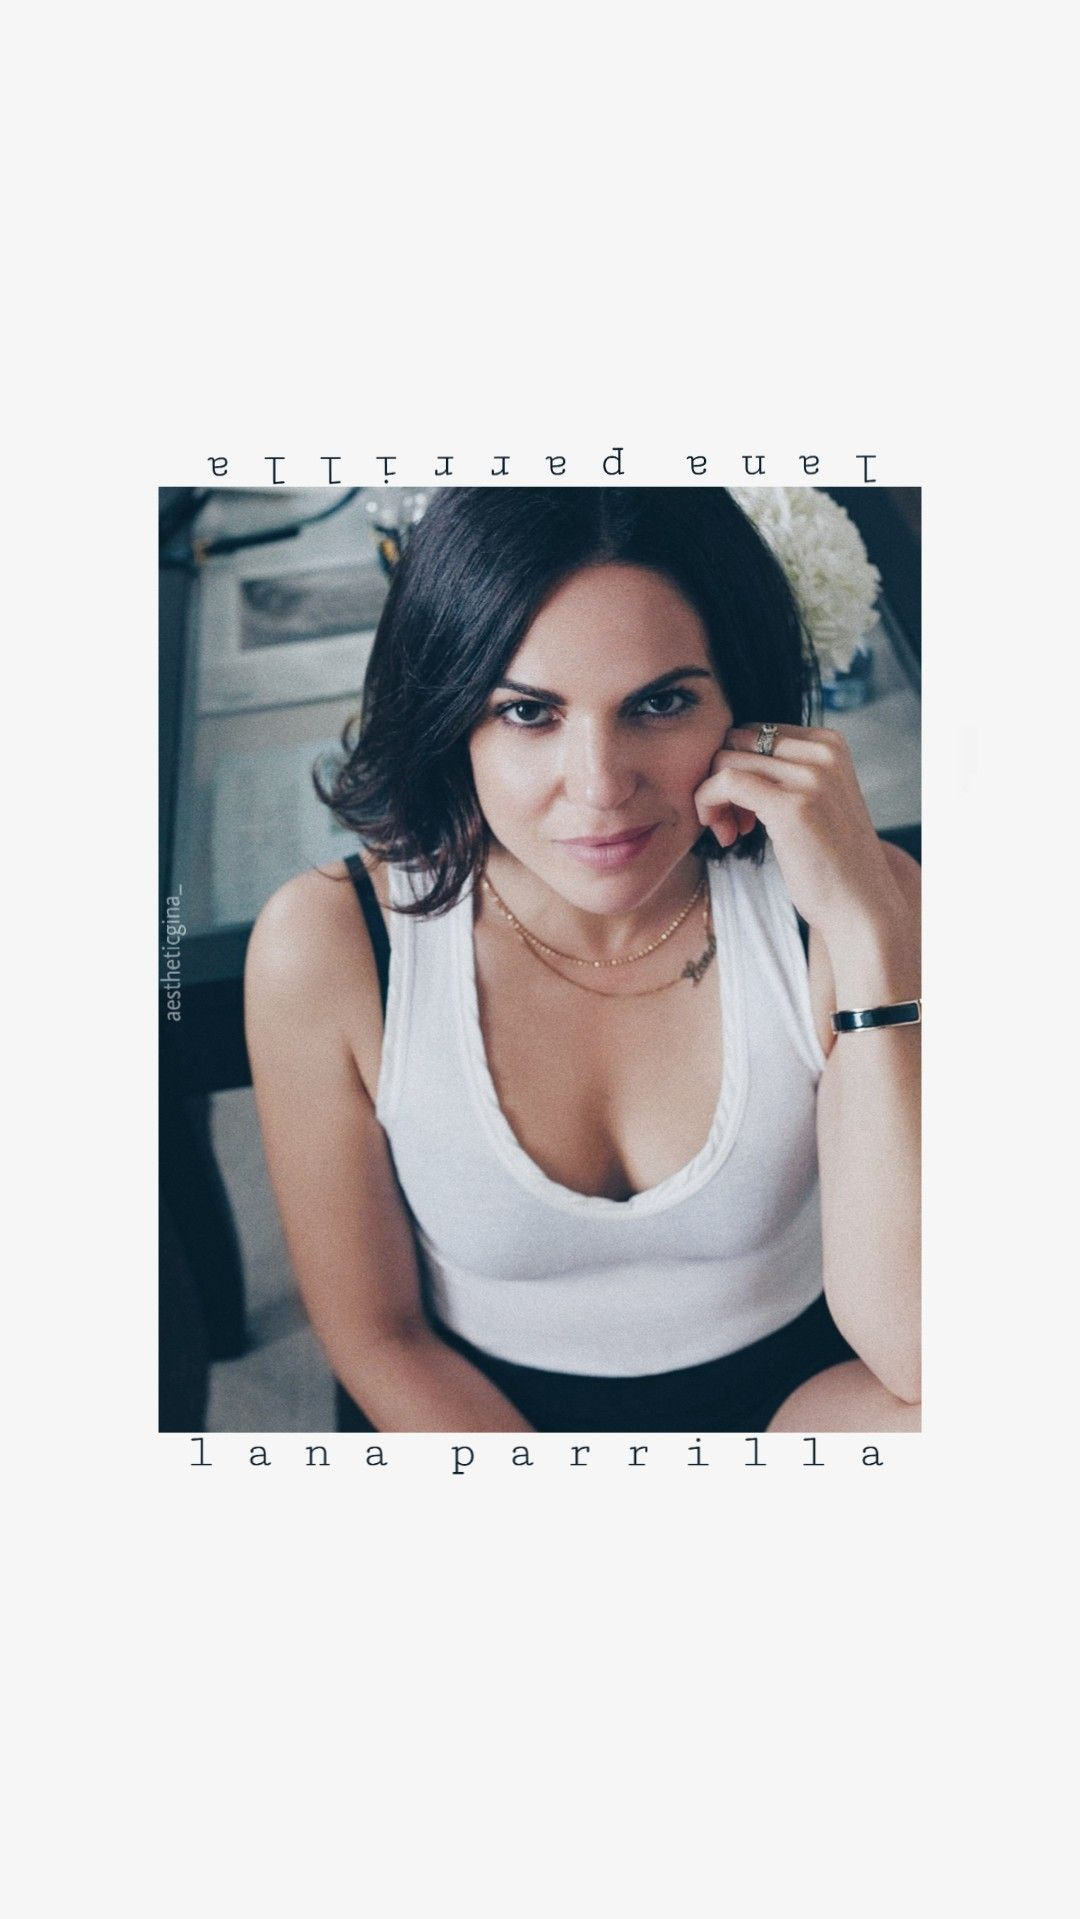 Lana Parrilla Wallpaper Once Upon A Time En 2019